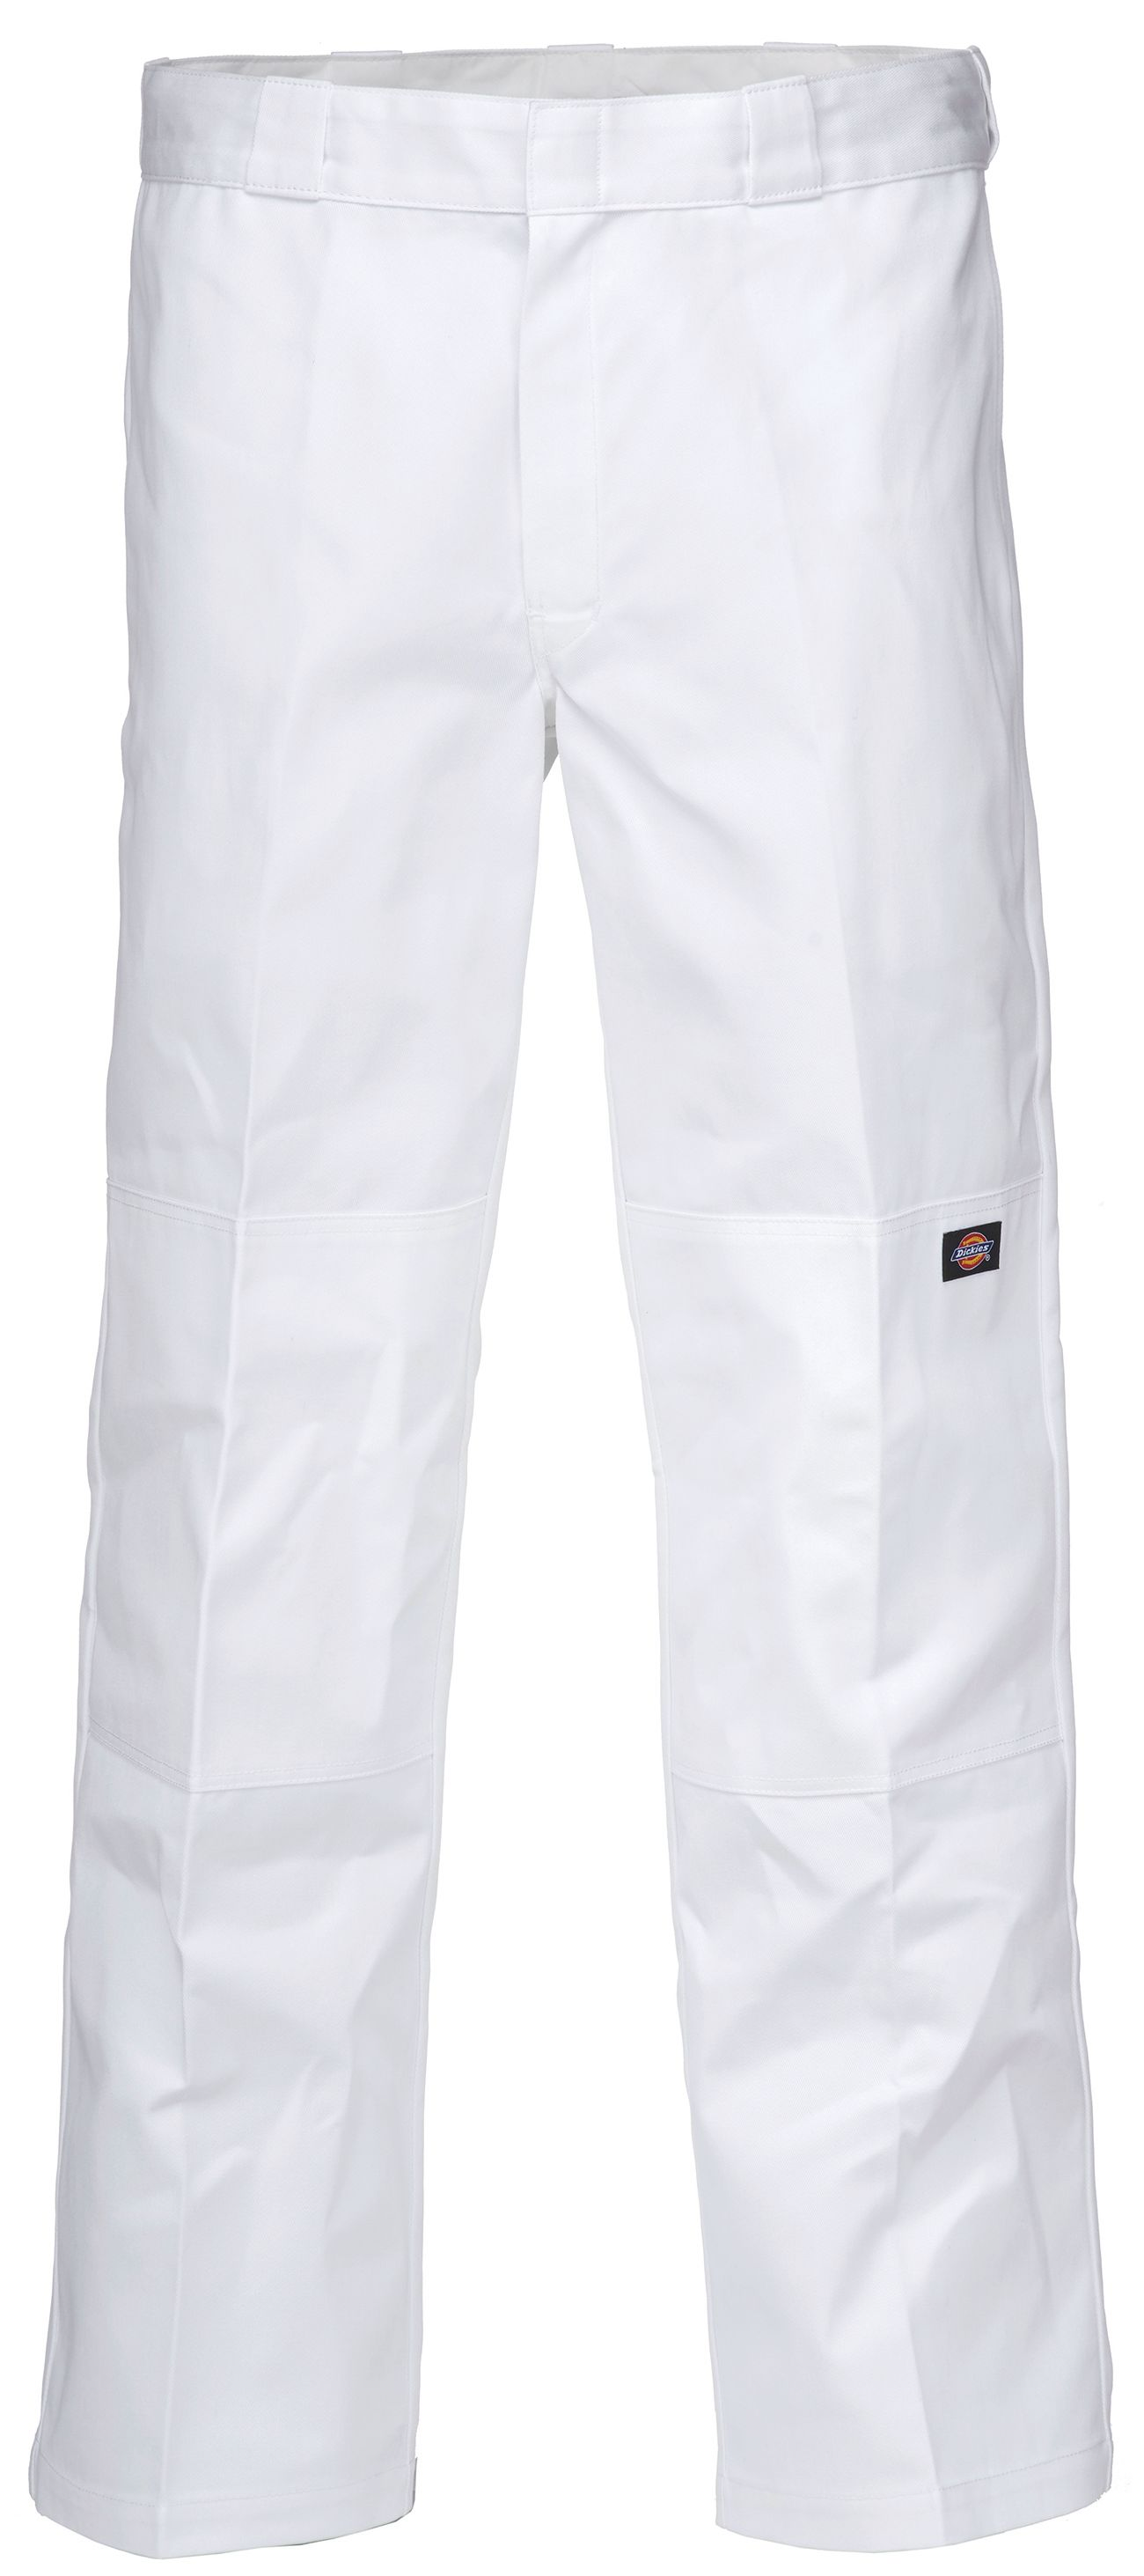 4f15d3be397 Dickies D Knee Work - Pantalon en tissu pour Homme - Blanc - Planet Sports